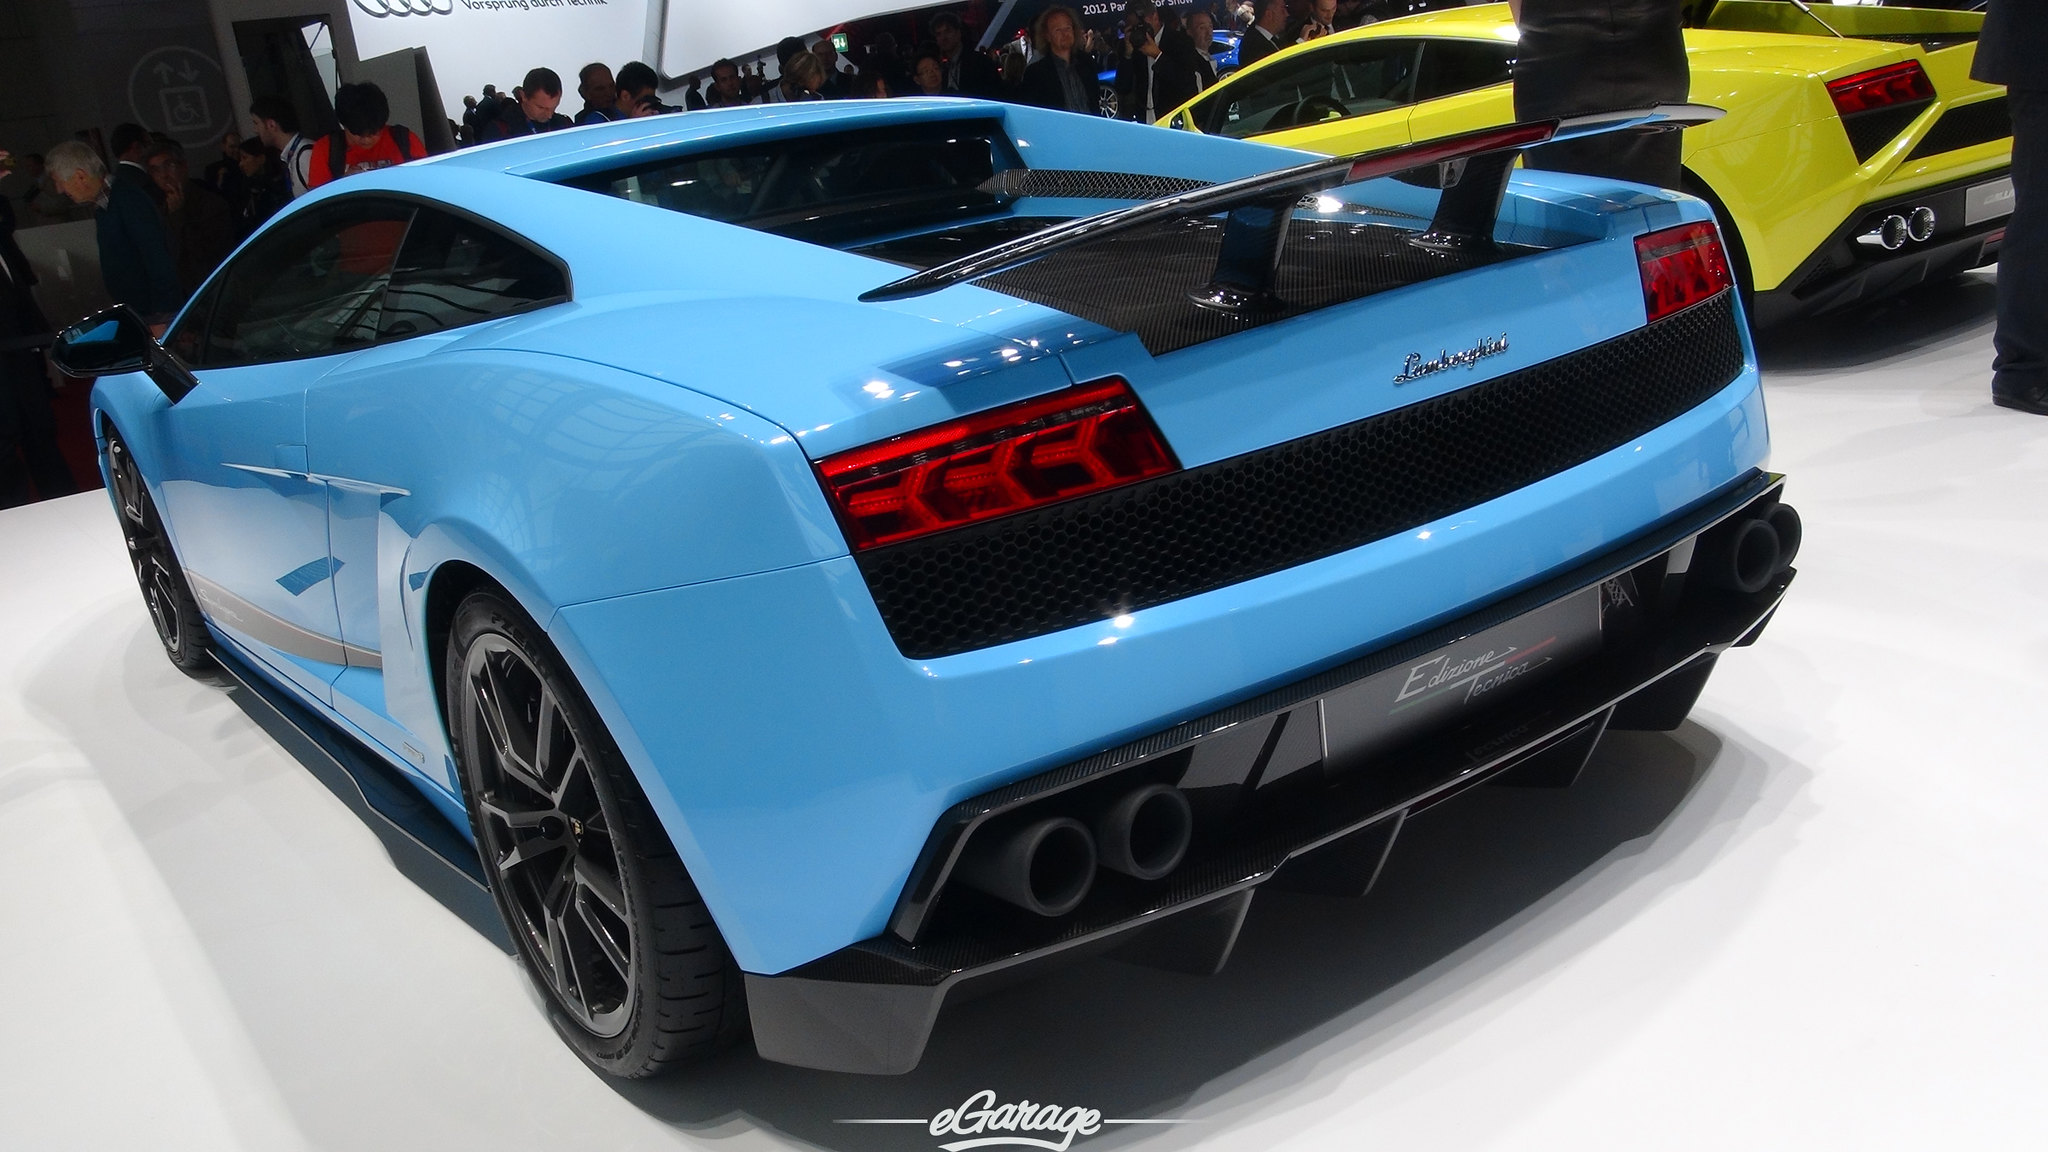 8034742015 5fb0612241 k 2012 Paris Motor Show